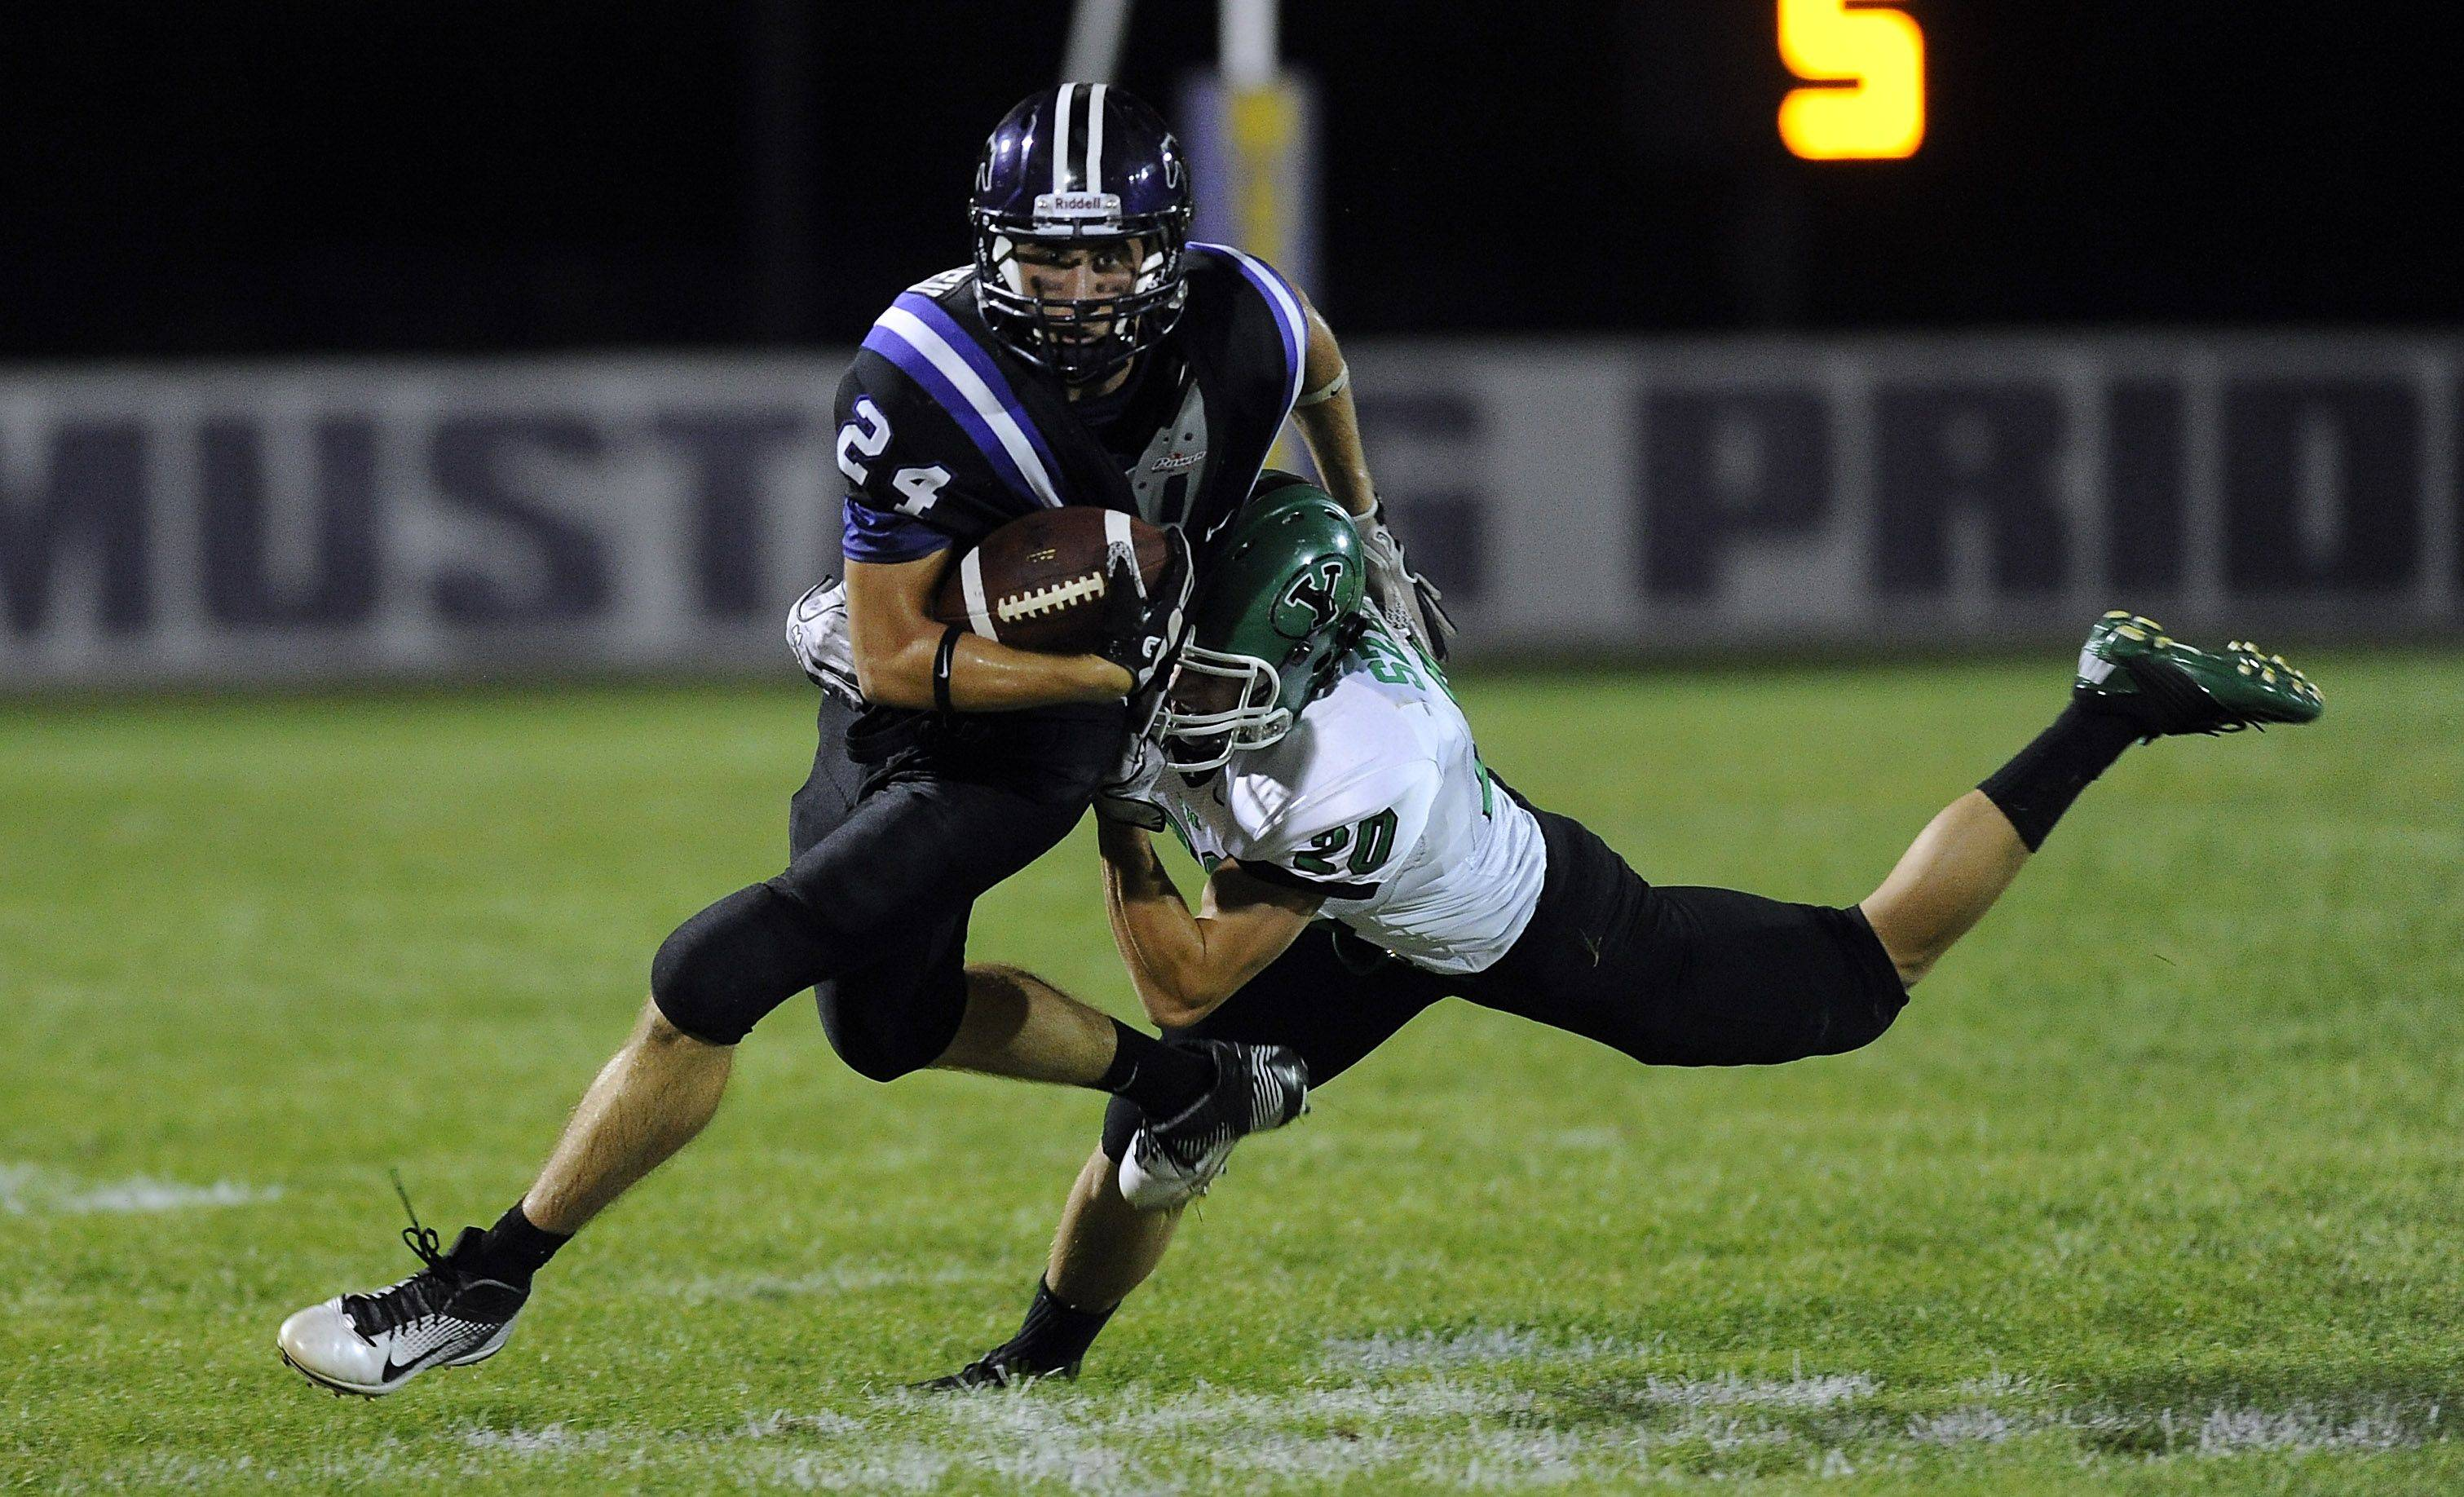 Rolling Meadows' Ryan Gundersen is tackled by York's Kevin Szeluga during Friday's opening night of high school football in the nortwest suburbs.